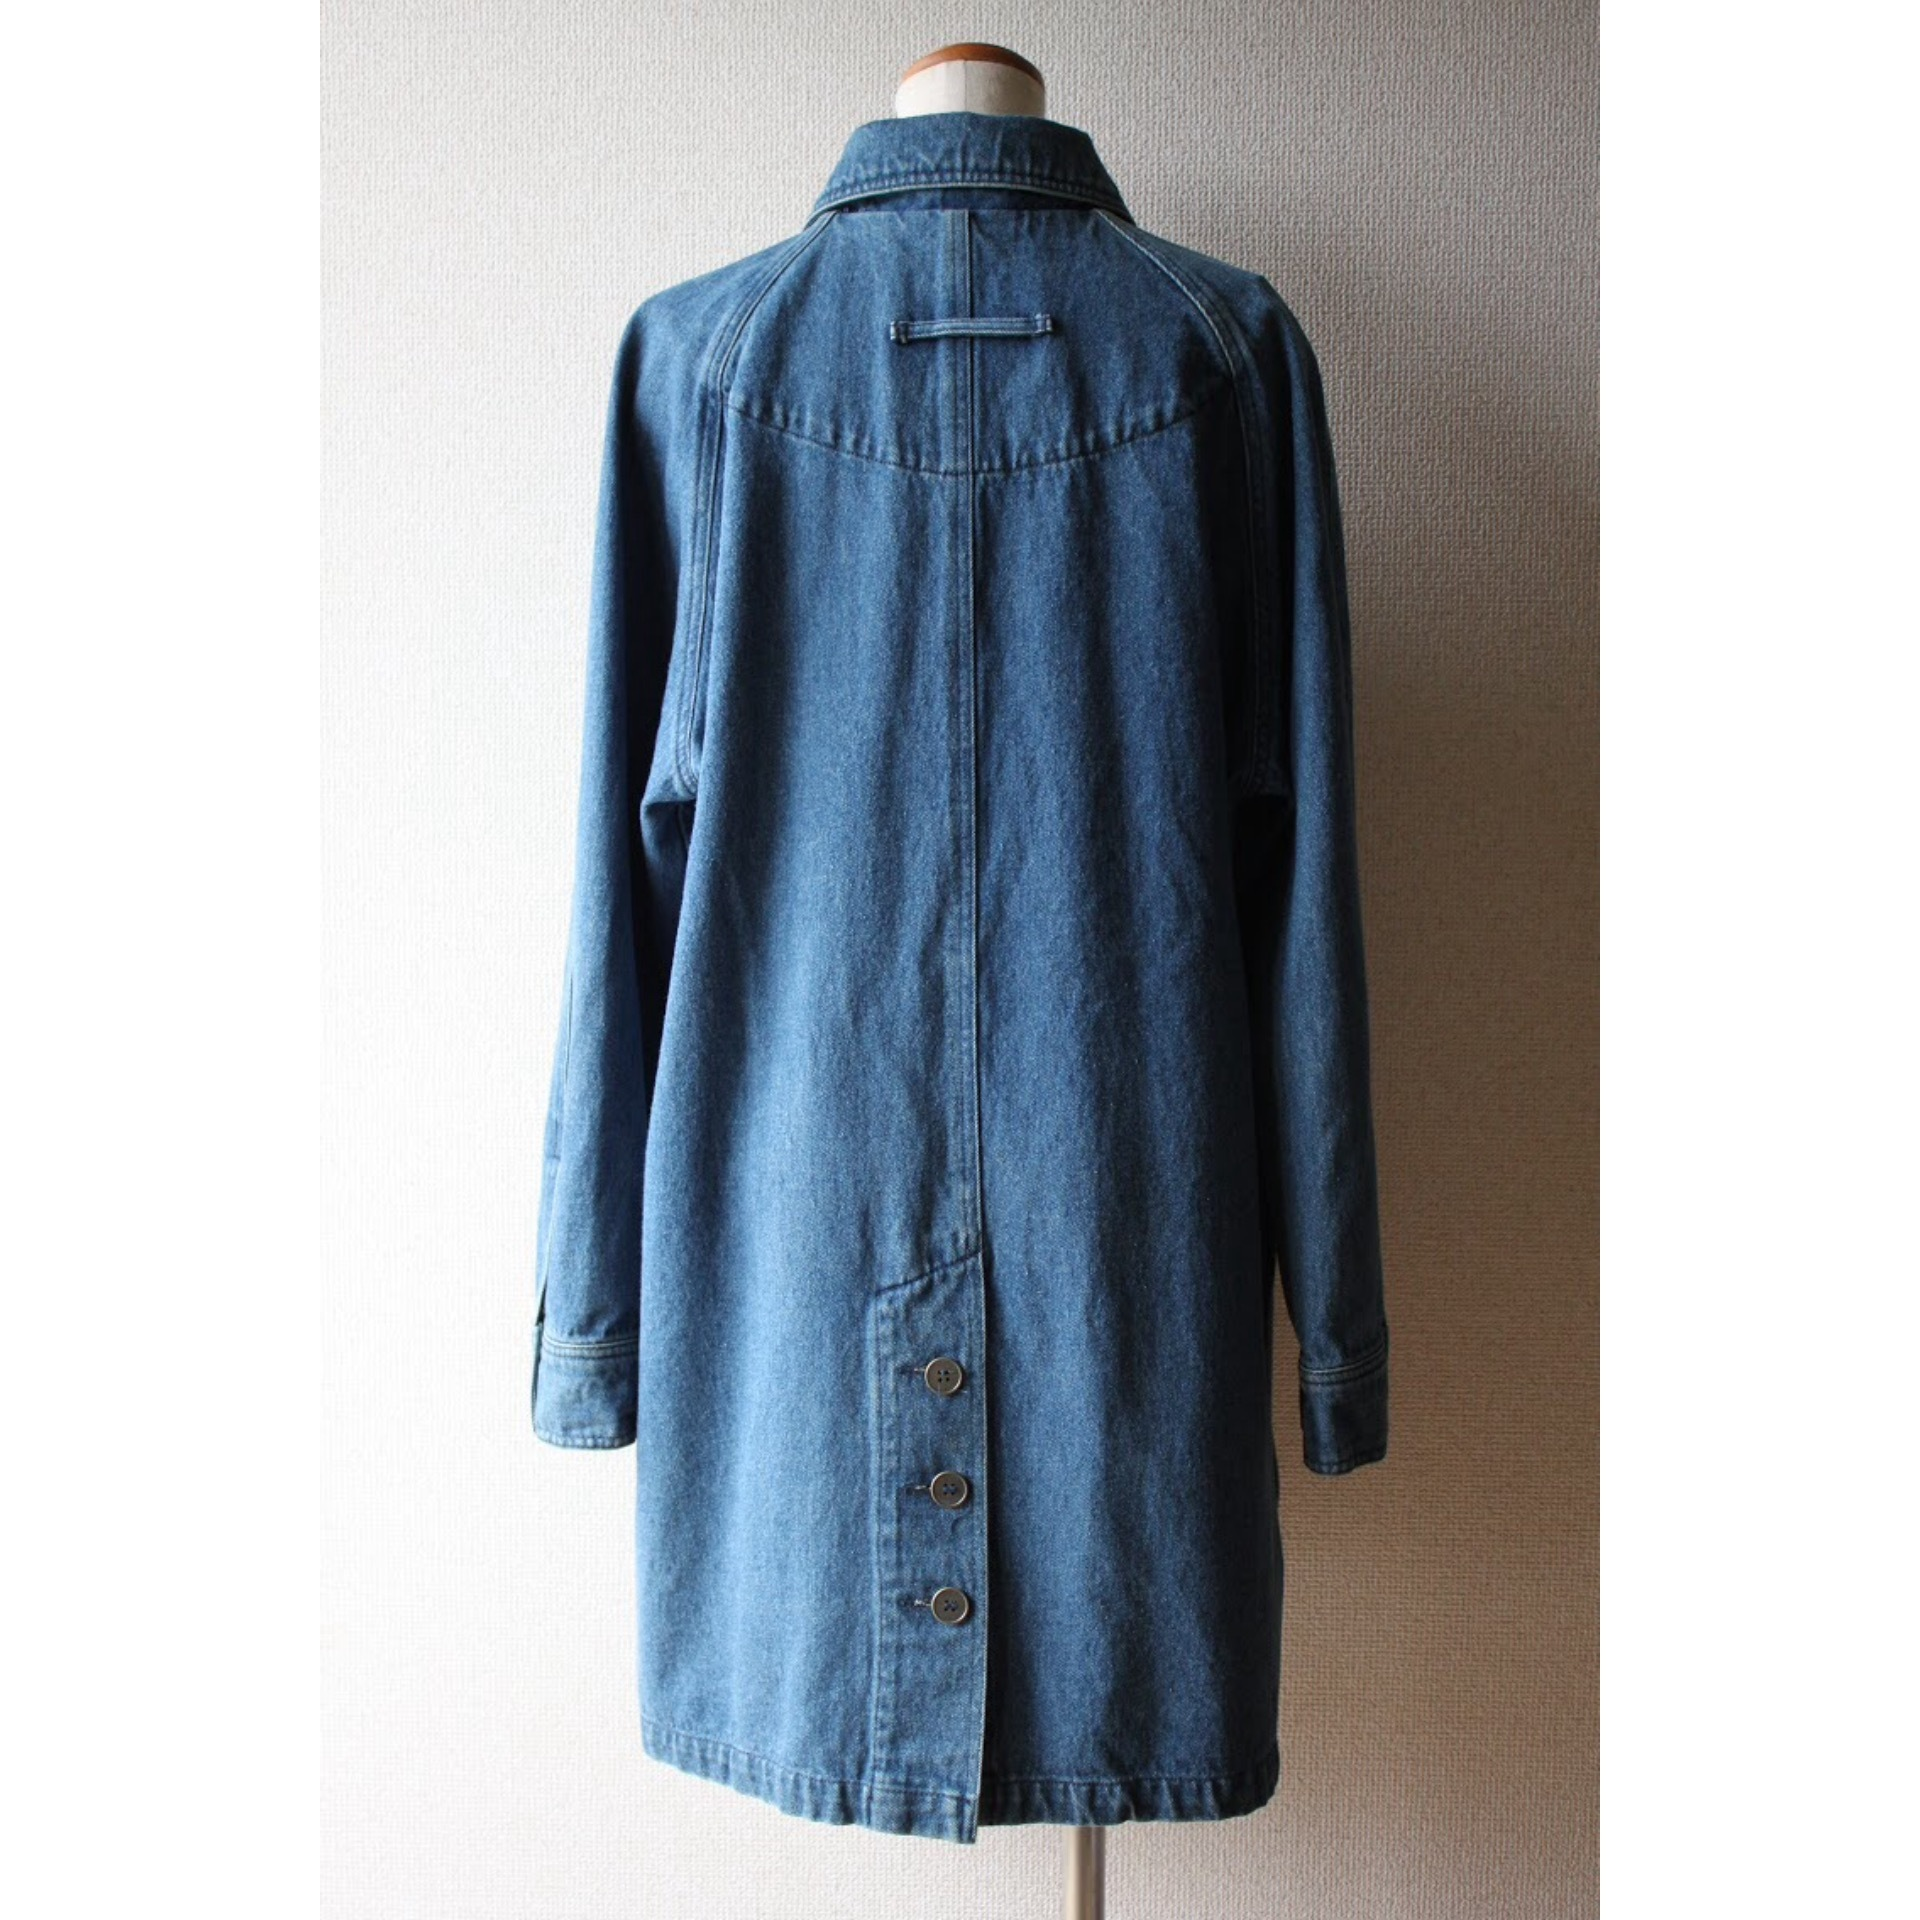 Vintage denim coat by Eddie Bauer